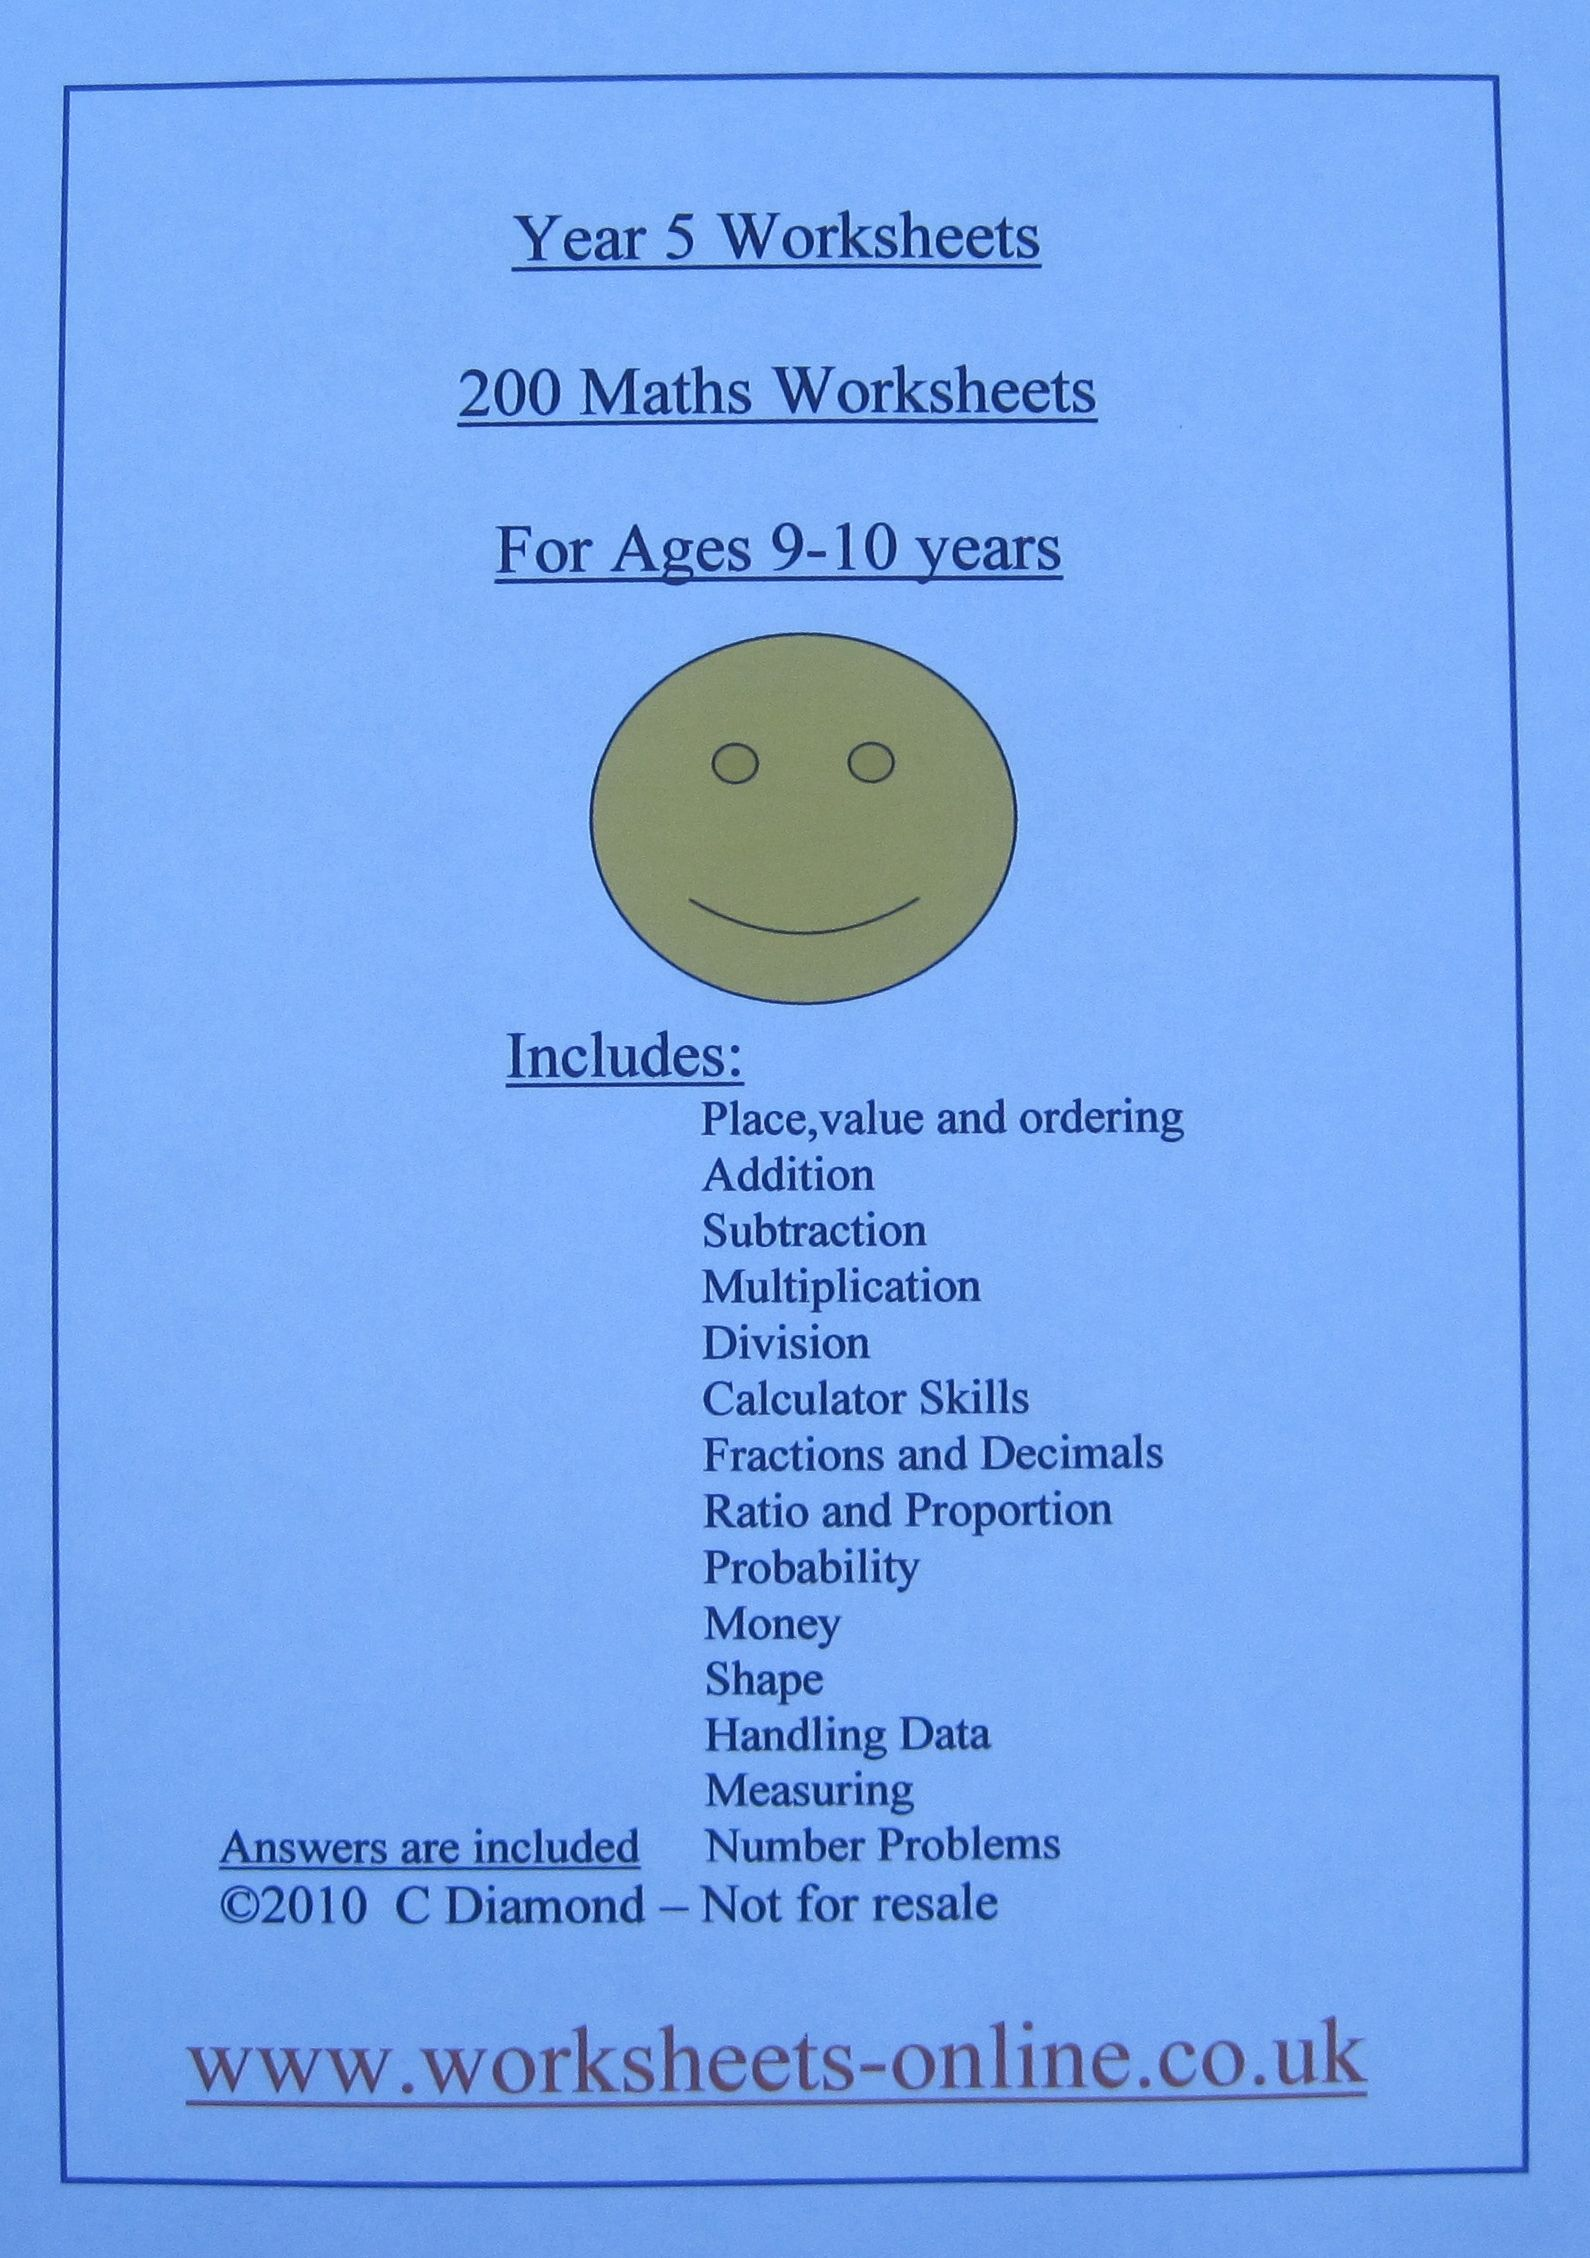 200 Year 5 Maths Worksheets For Children Aged 9 Or 10 Years Old